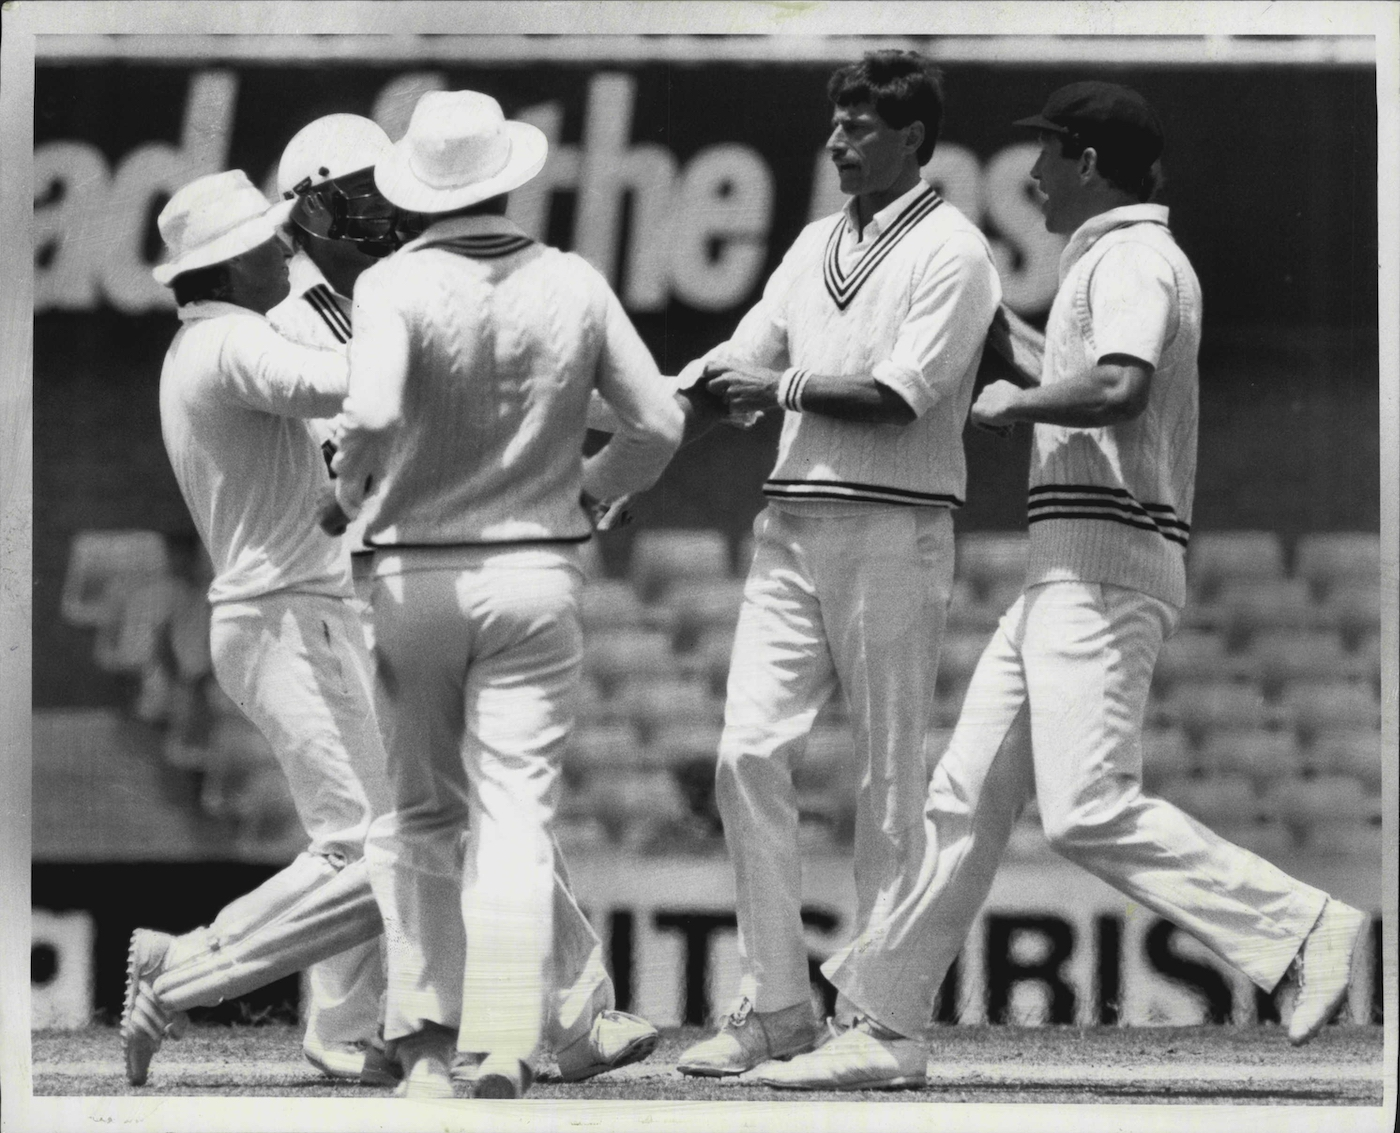 Richard Hadlee became only the tenth player to take nine wickets in an innings